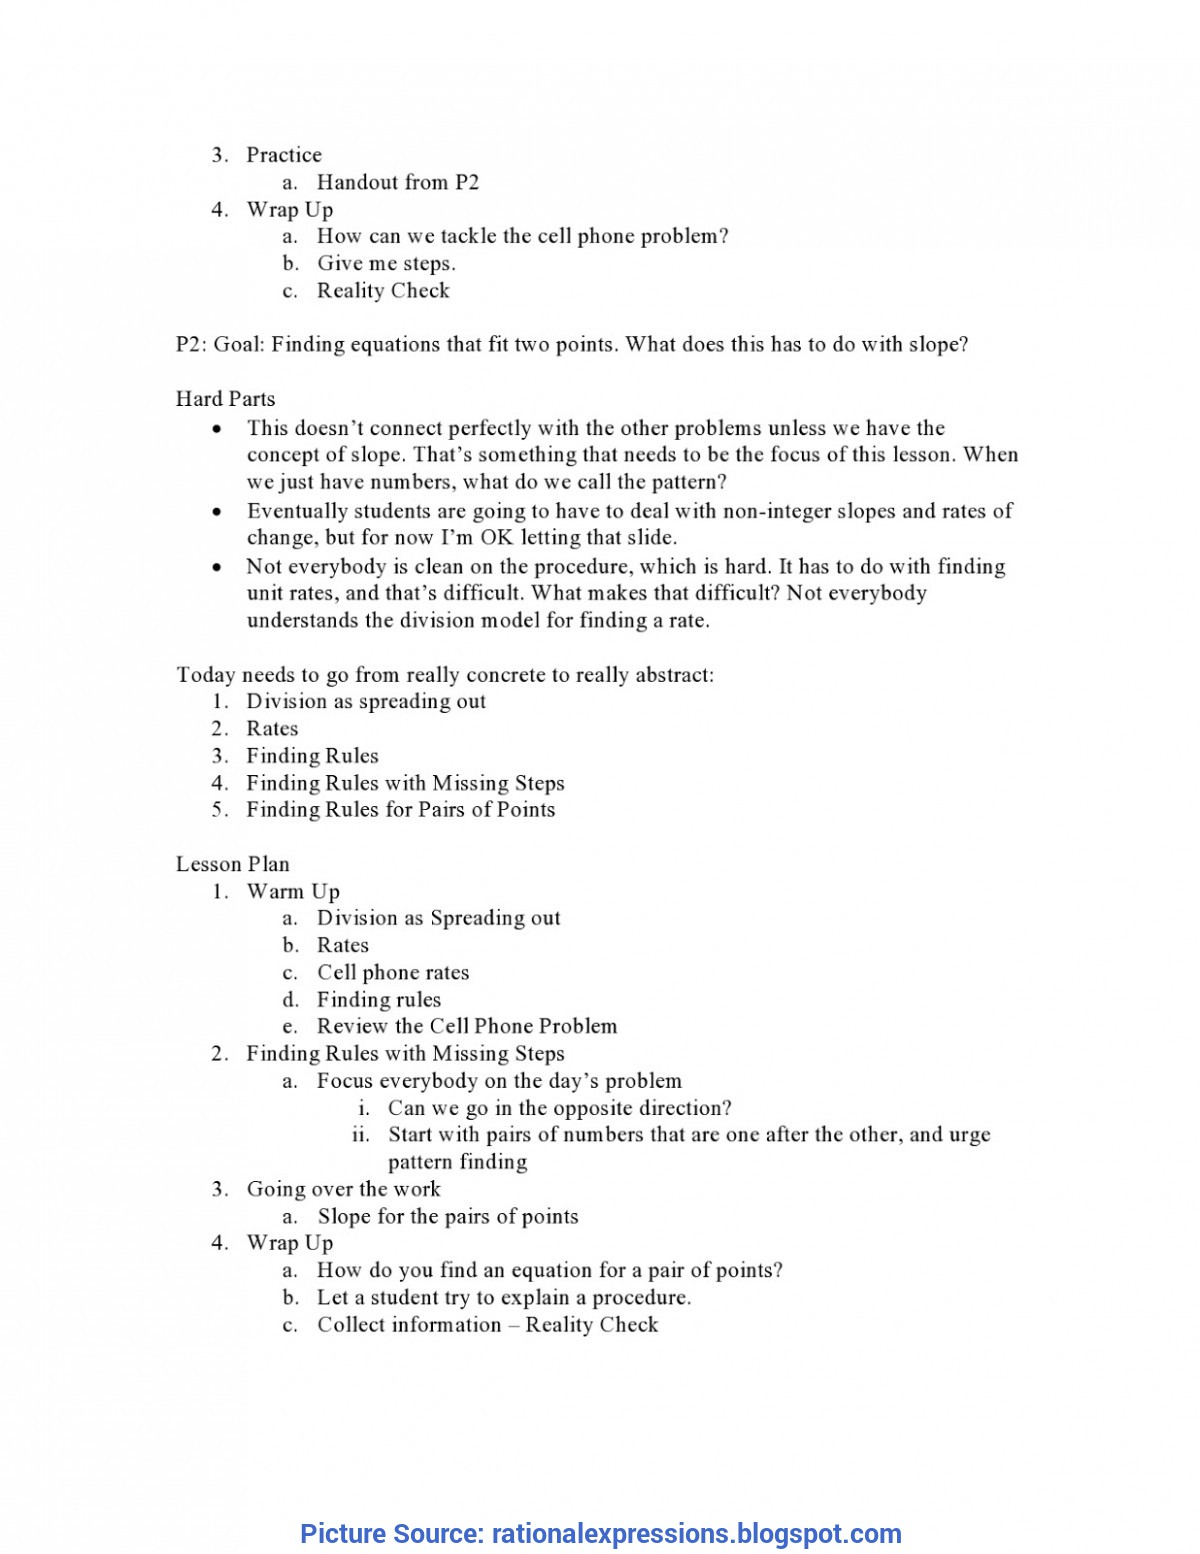 Trending How To Make A Detailed Lesson Plan In Elementary Rational Expressions: The Hard P